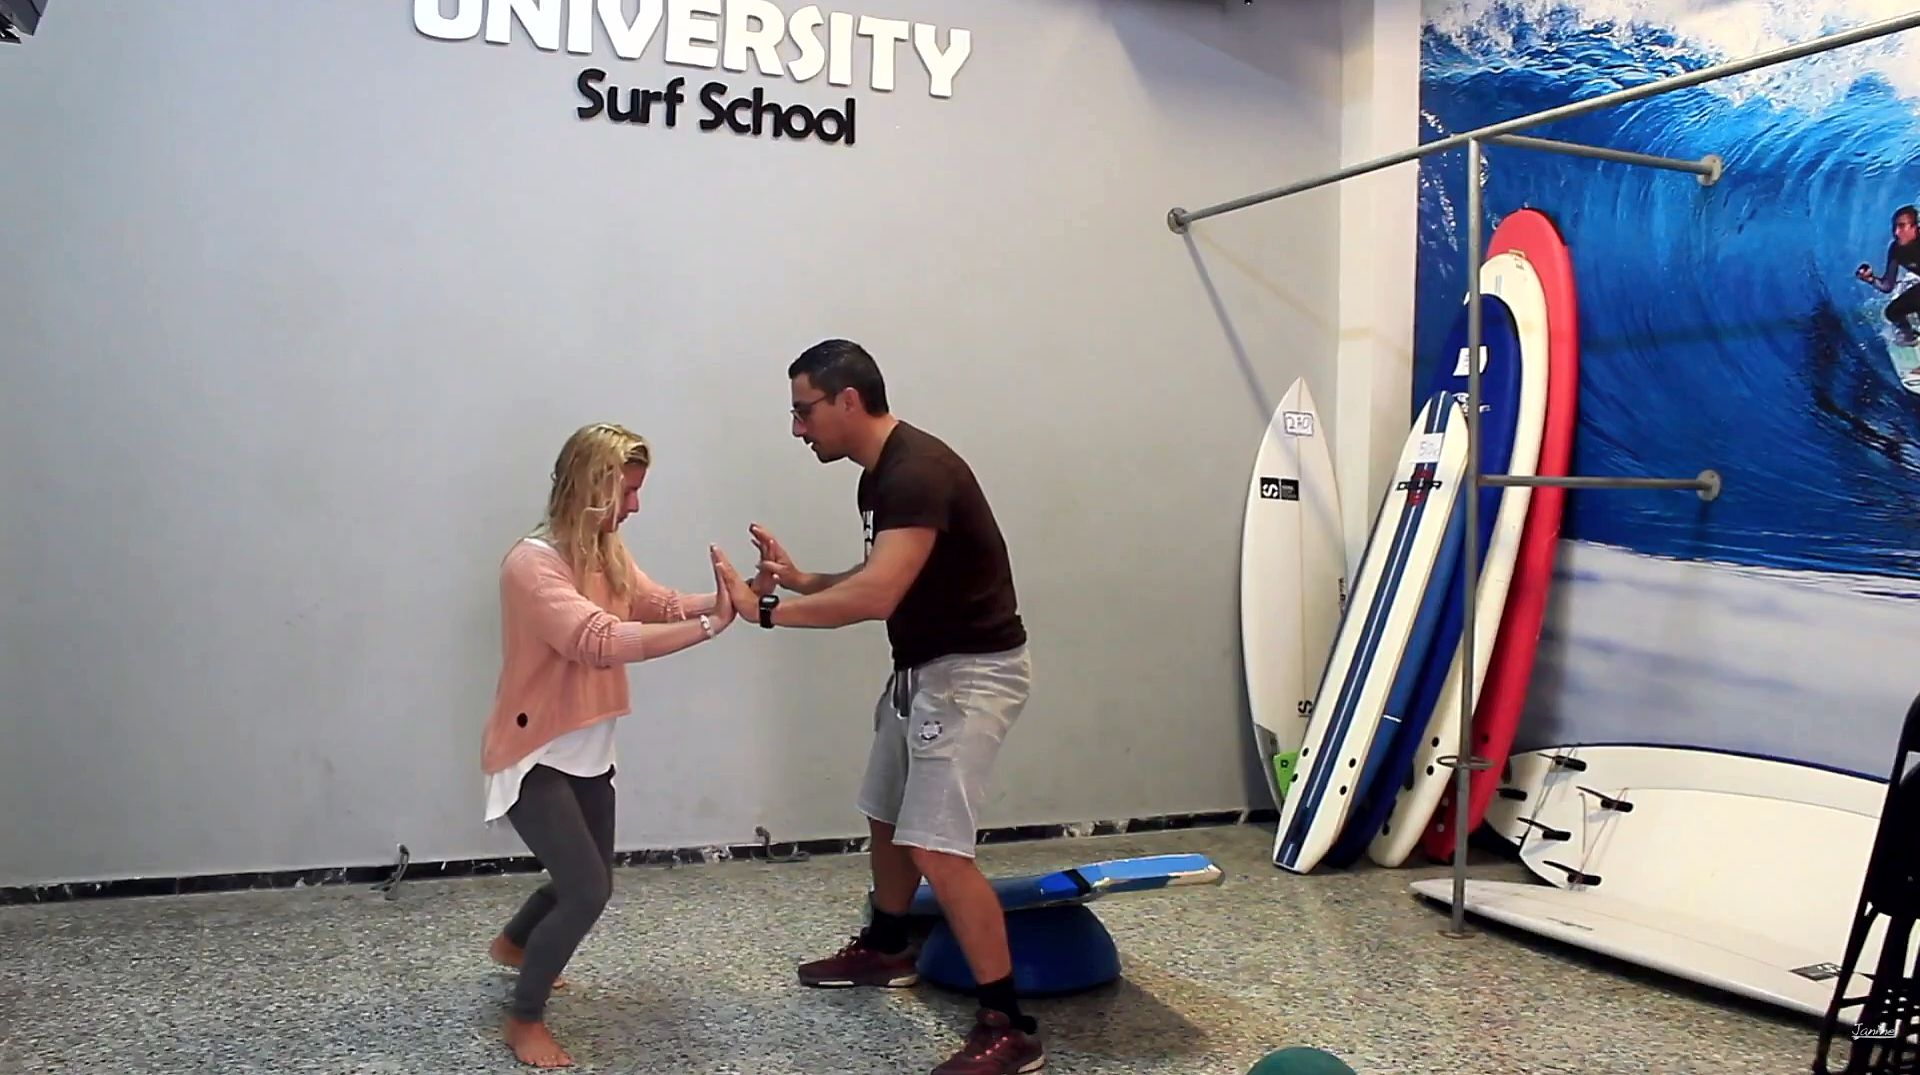 University Surf School - Besser Surfen